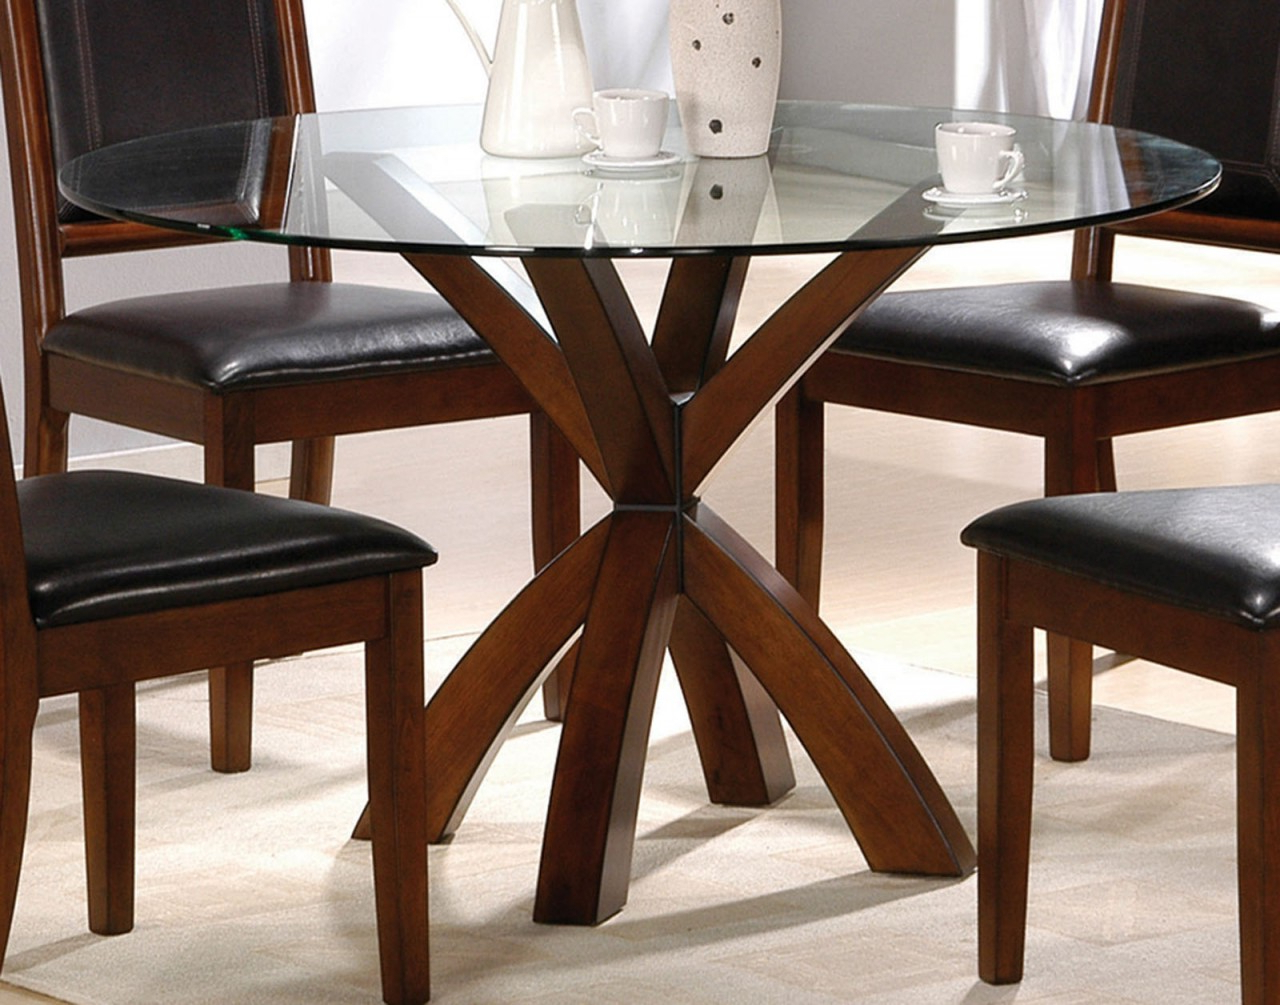 Popular 4 Seater Round Wooden Dining Tables With Chrome Legs Throughout Dining Table Bases For Glass Tops (View 23 of 30)